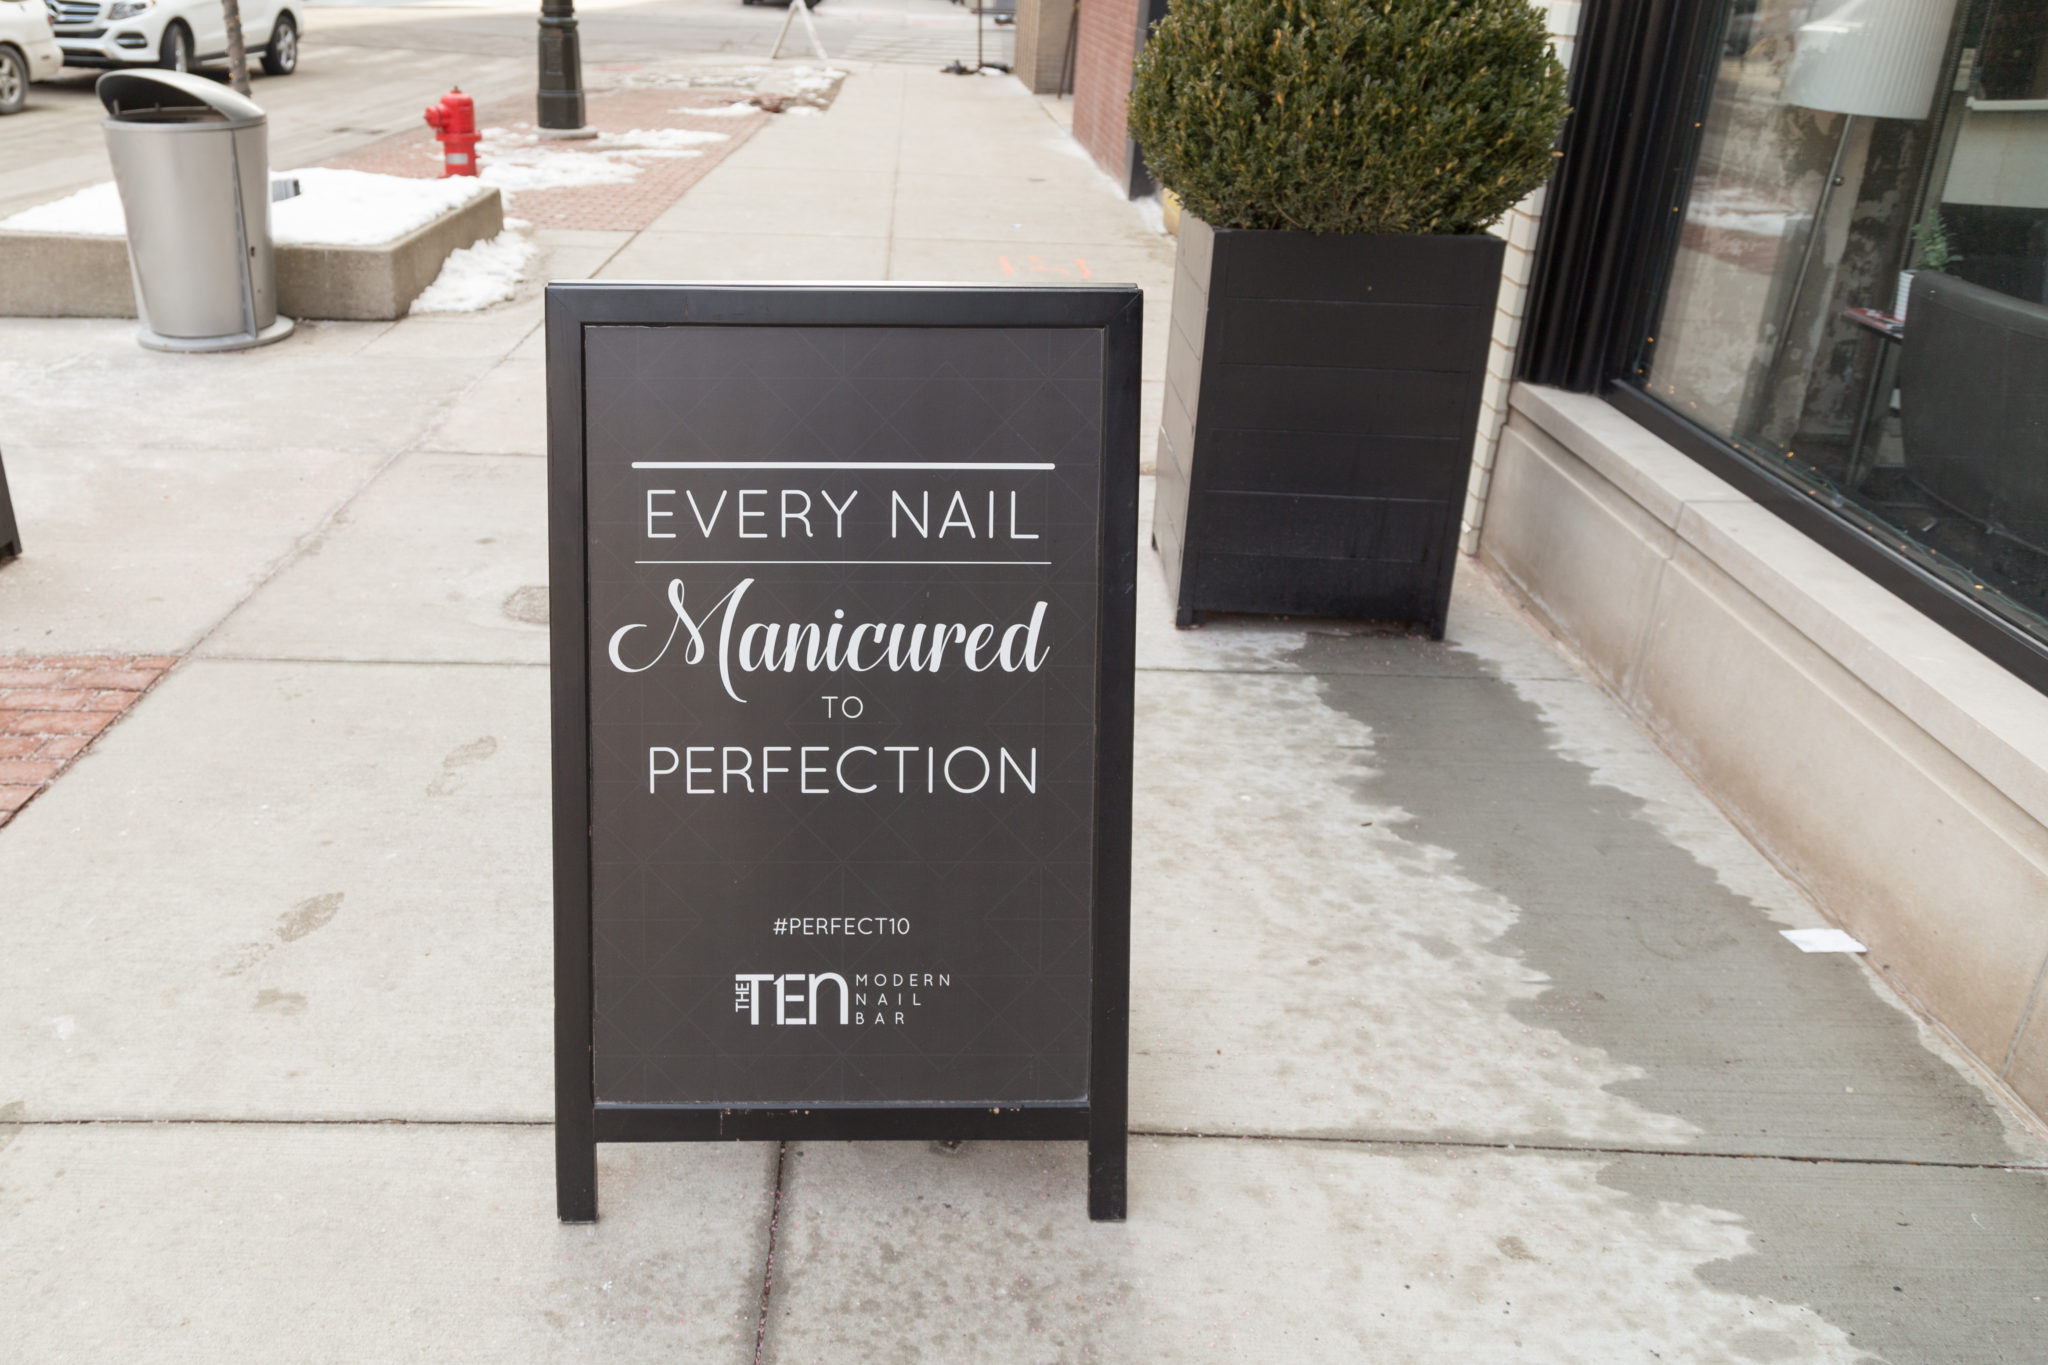 The Ten Nail Bar in Detroit | Detroit's first modern nail bar | The best place to get a manicure in Metro Detroit on allweareblog.com